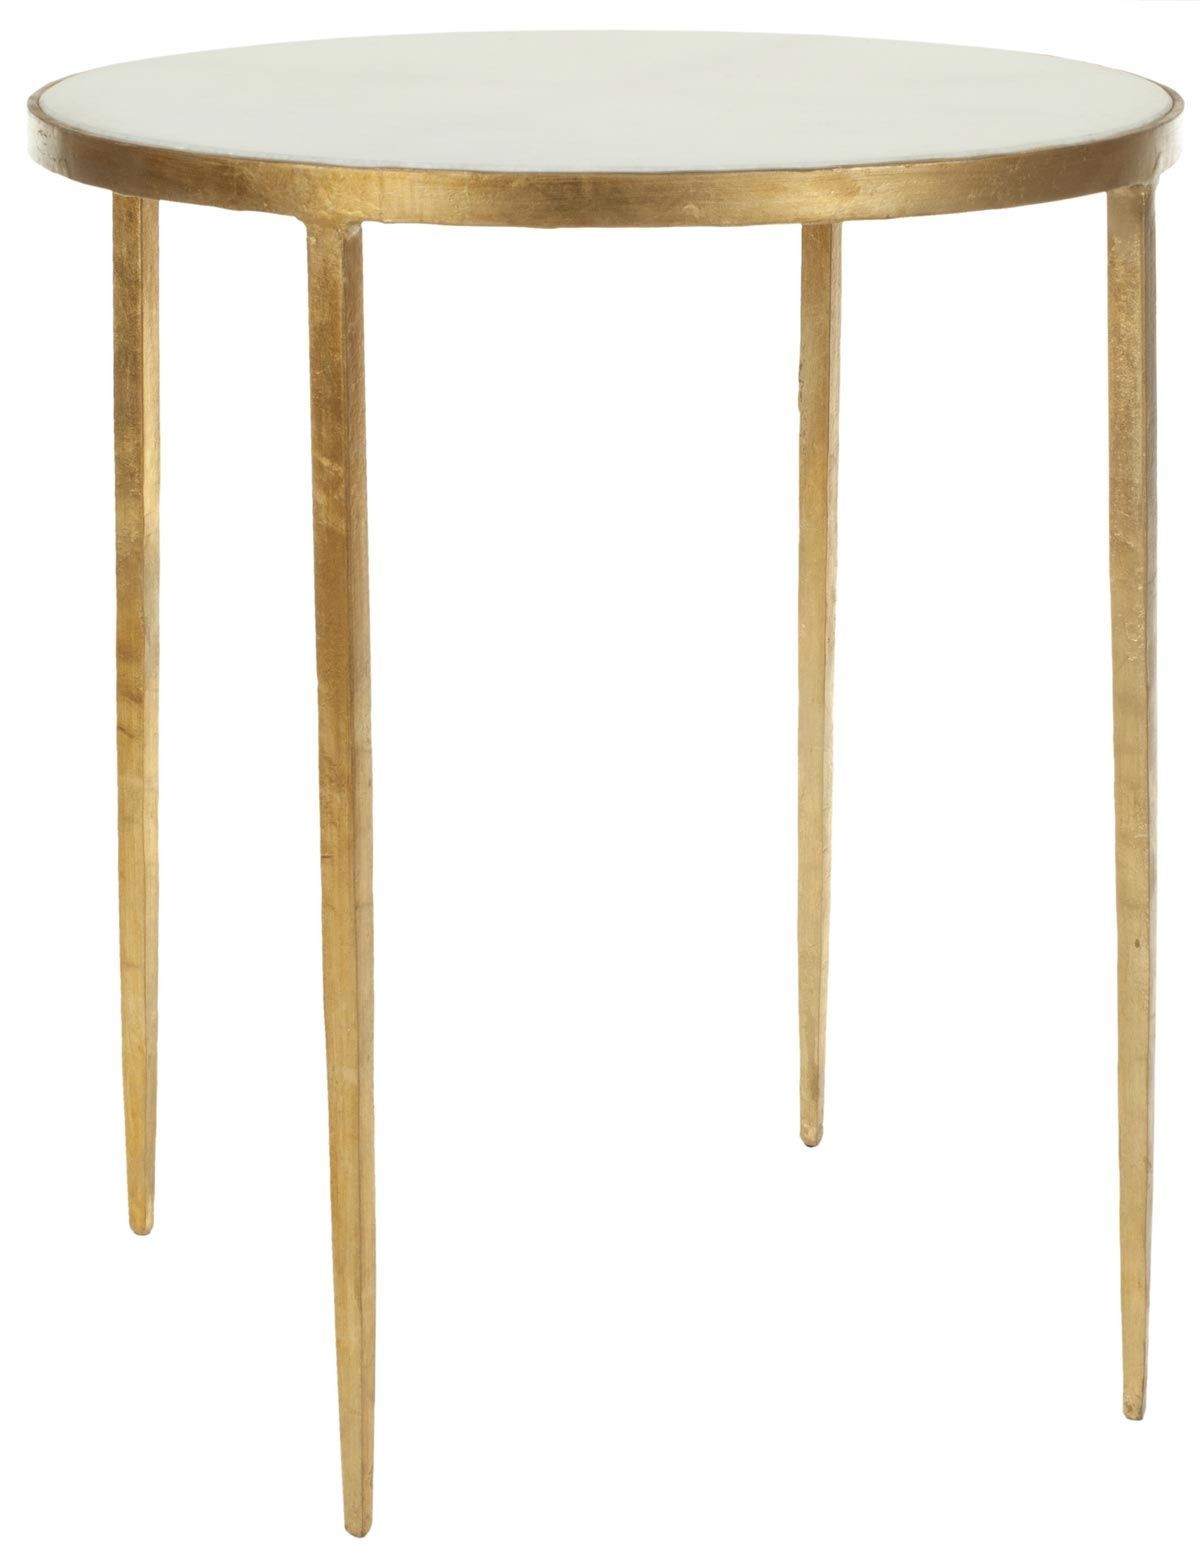 accent tables furniture side threshold mirrored table safavieh versatile and classic the tracey round for bedroom living room small sofa folding chairs target mini fridge end wine